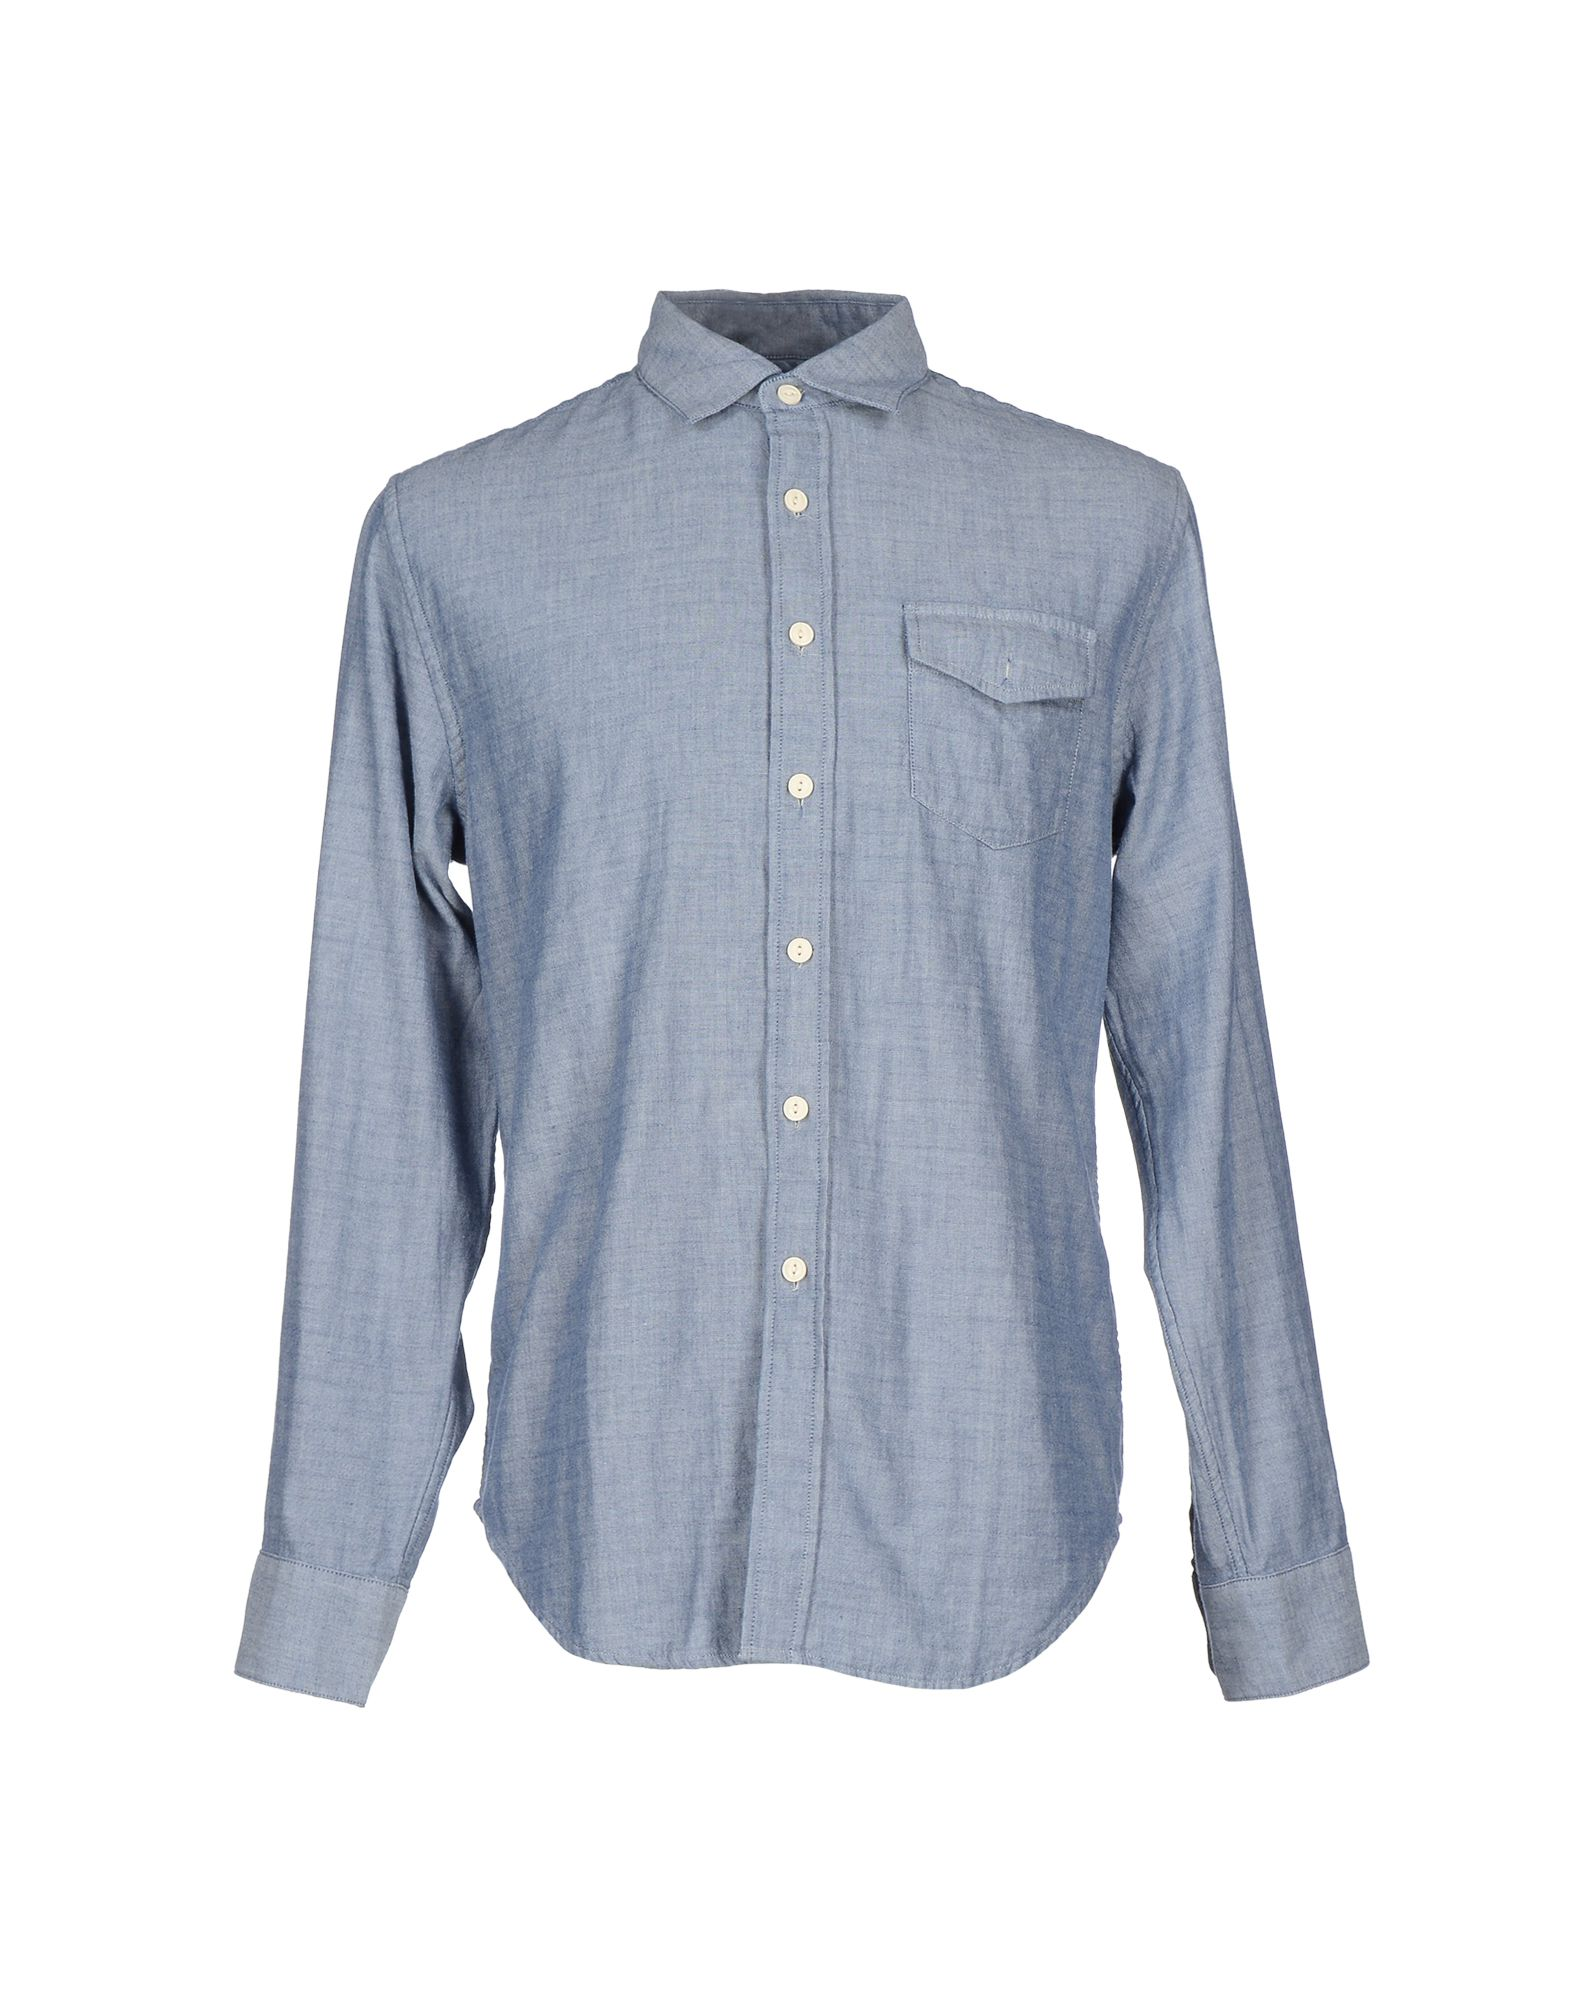 GRAYERS Solid Color Shirt in Blue